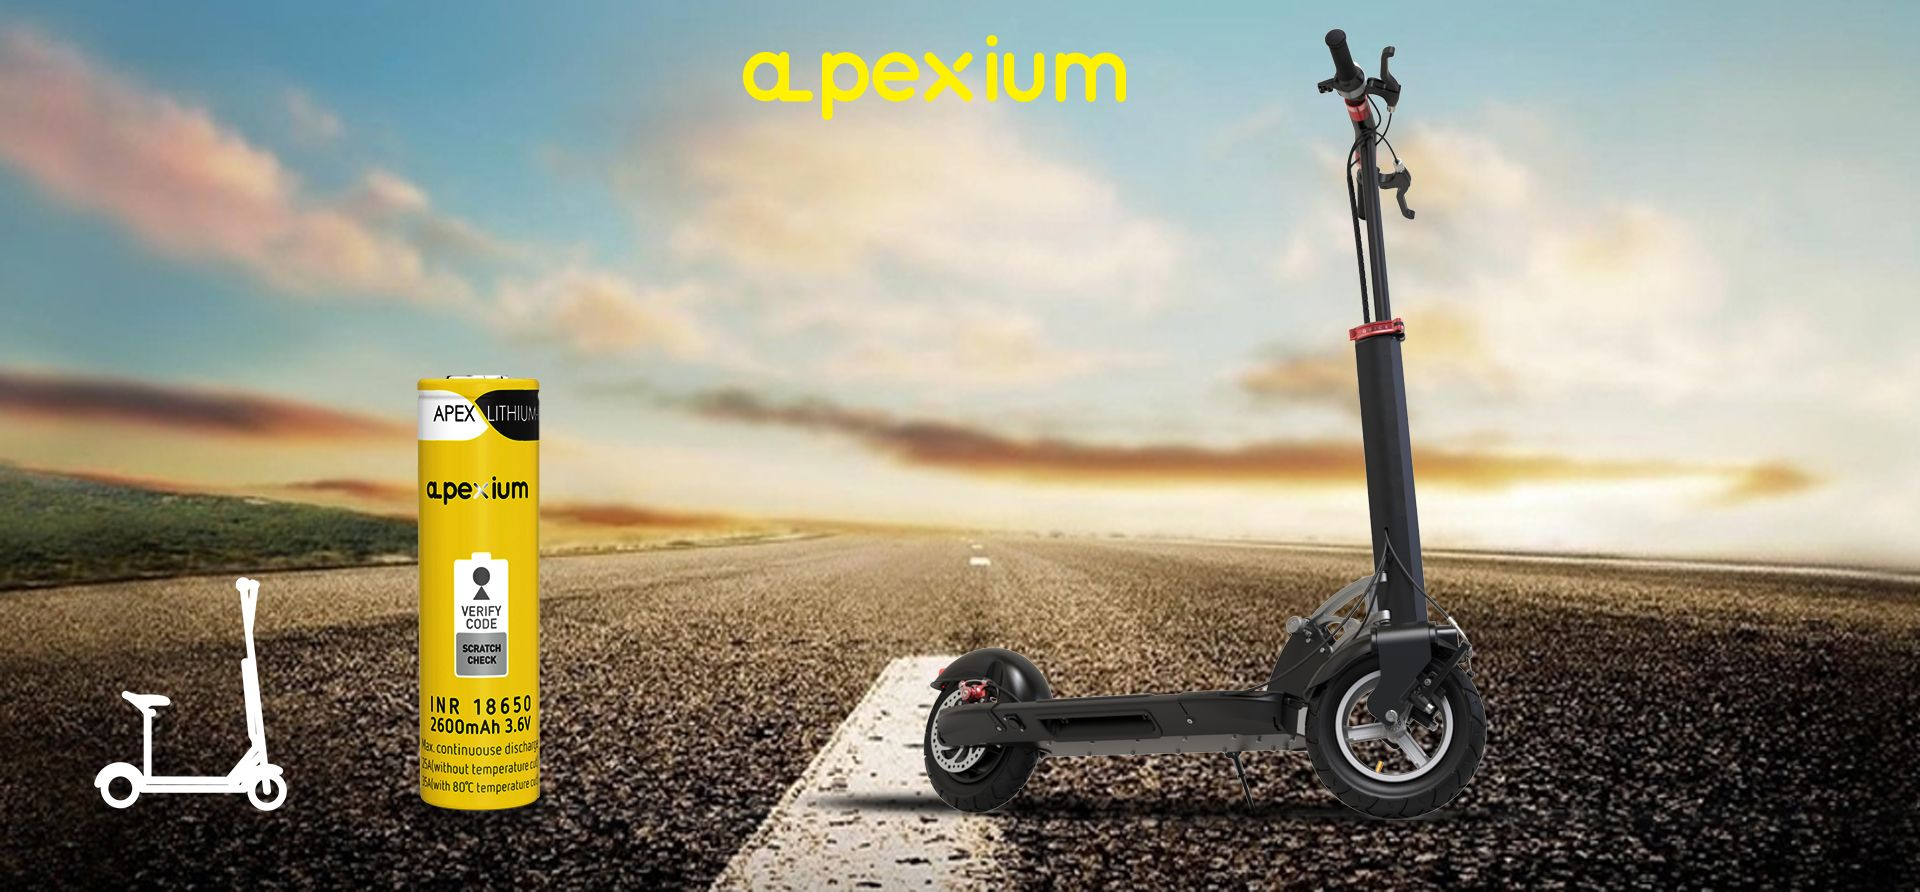 Best battery & pack for electric scooter! Apexium 18650 2600mAh 3 6